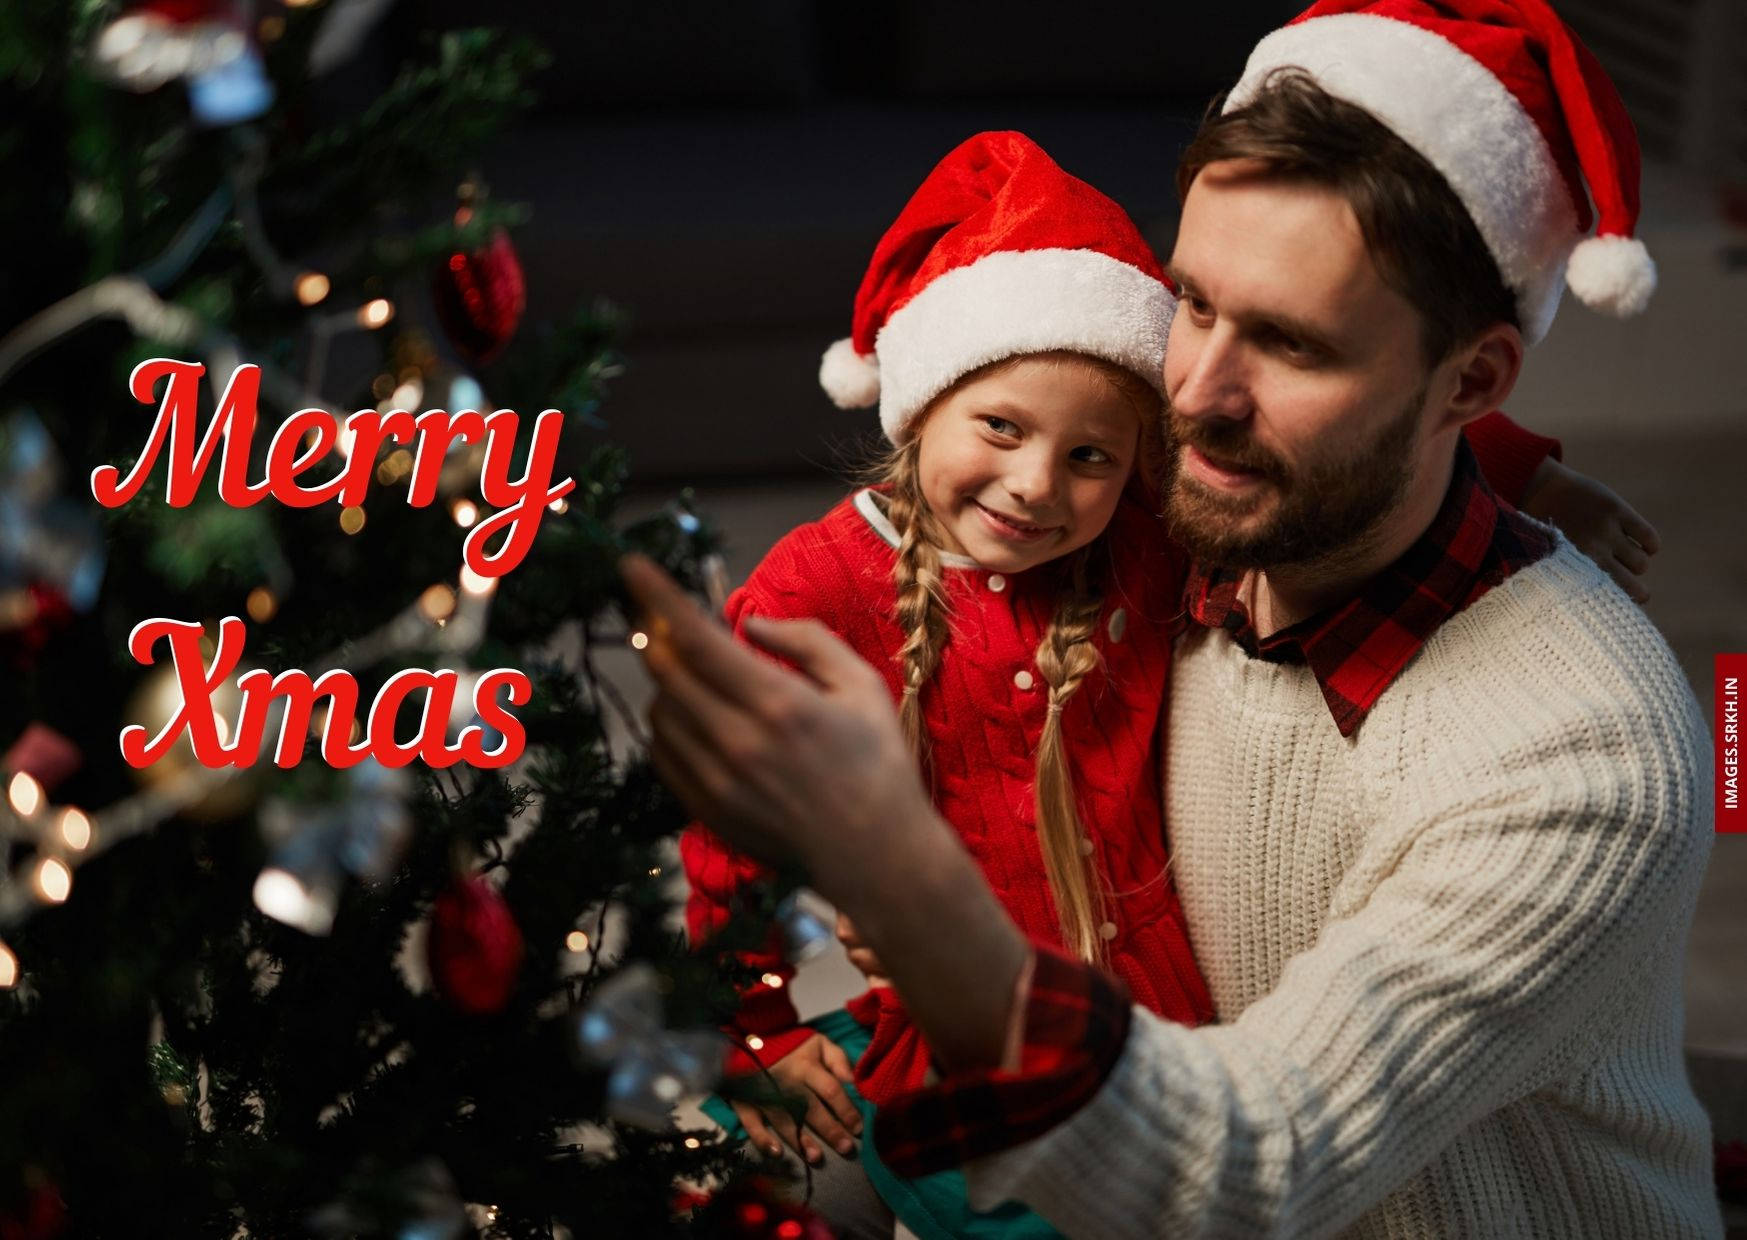 Xmas Father Images full HD free download.